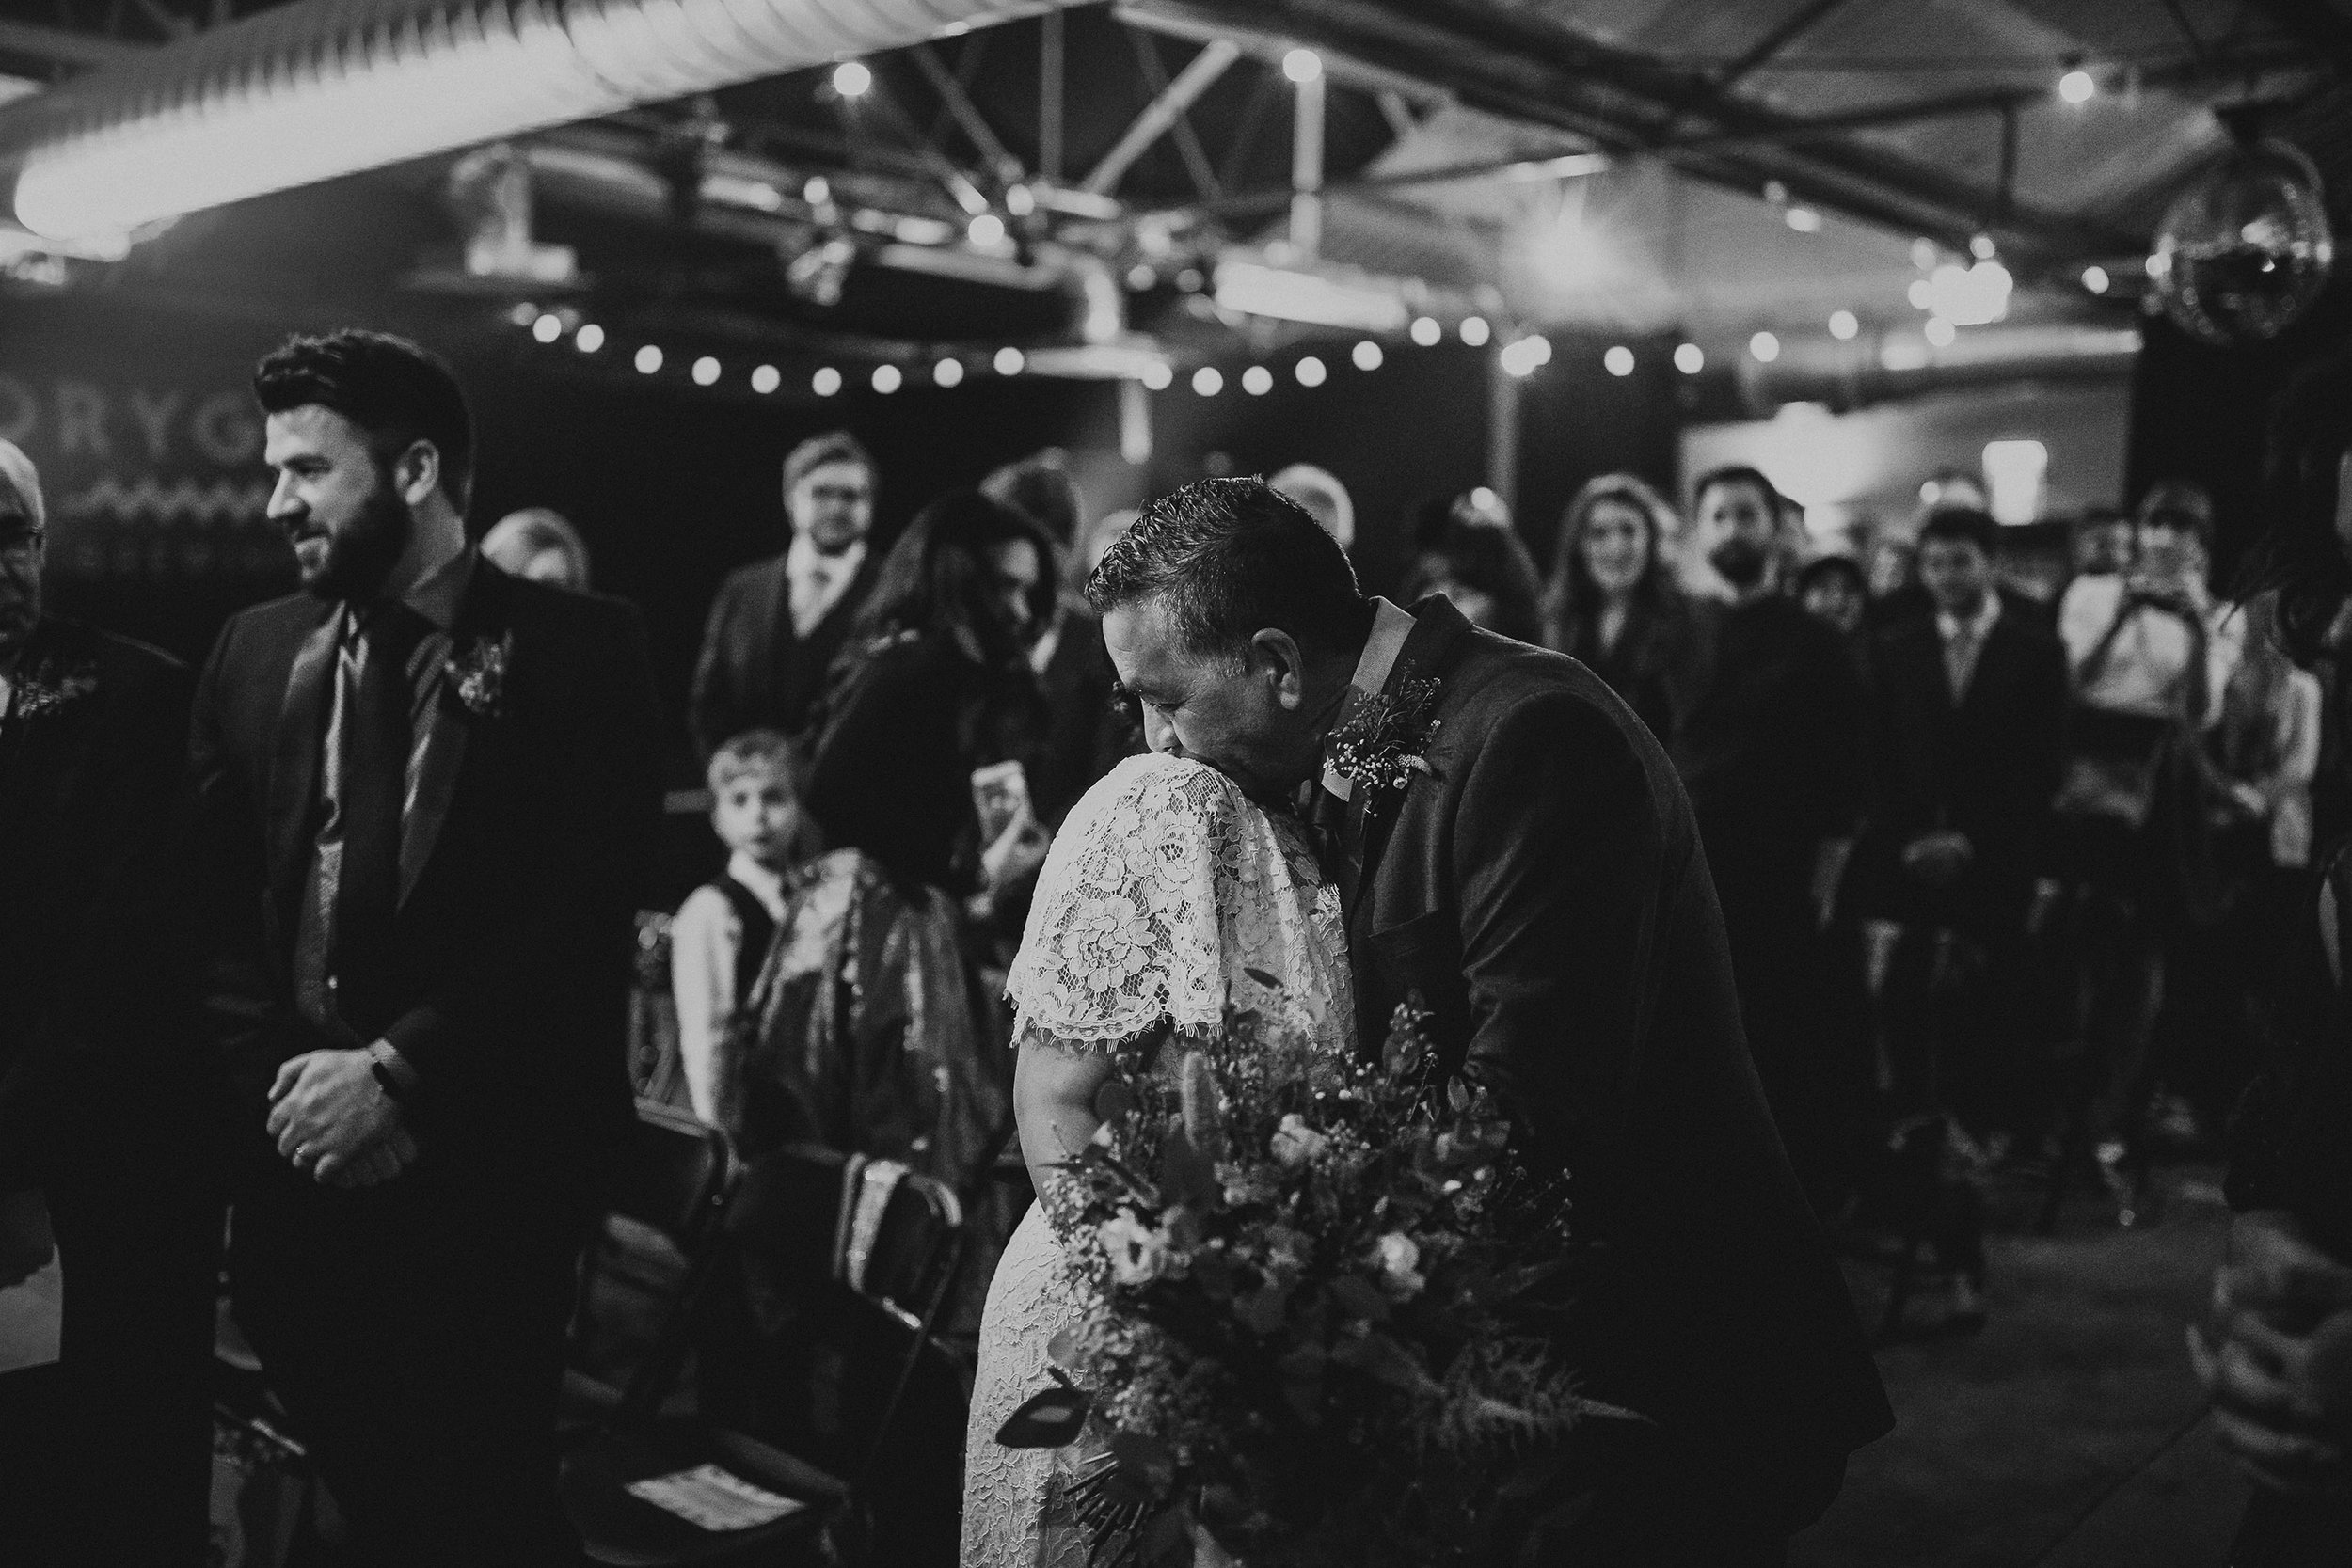 DRYGATE_WEDDING_PHOTOGRAPHER_PJ_PHILLIPS_WEDDING_PHOTOGRAPHY_41.jpg